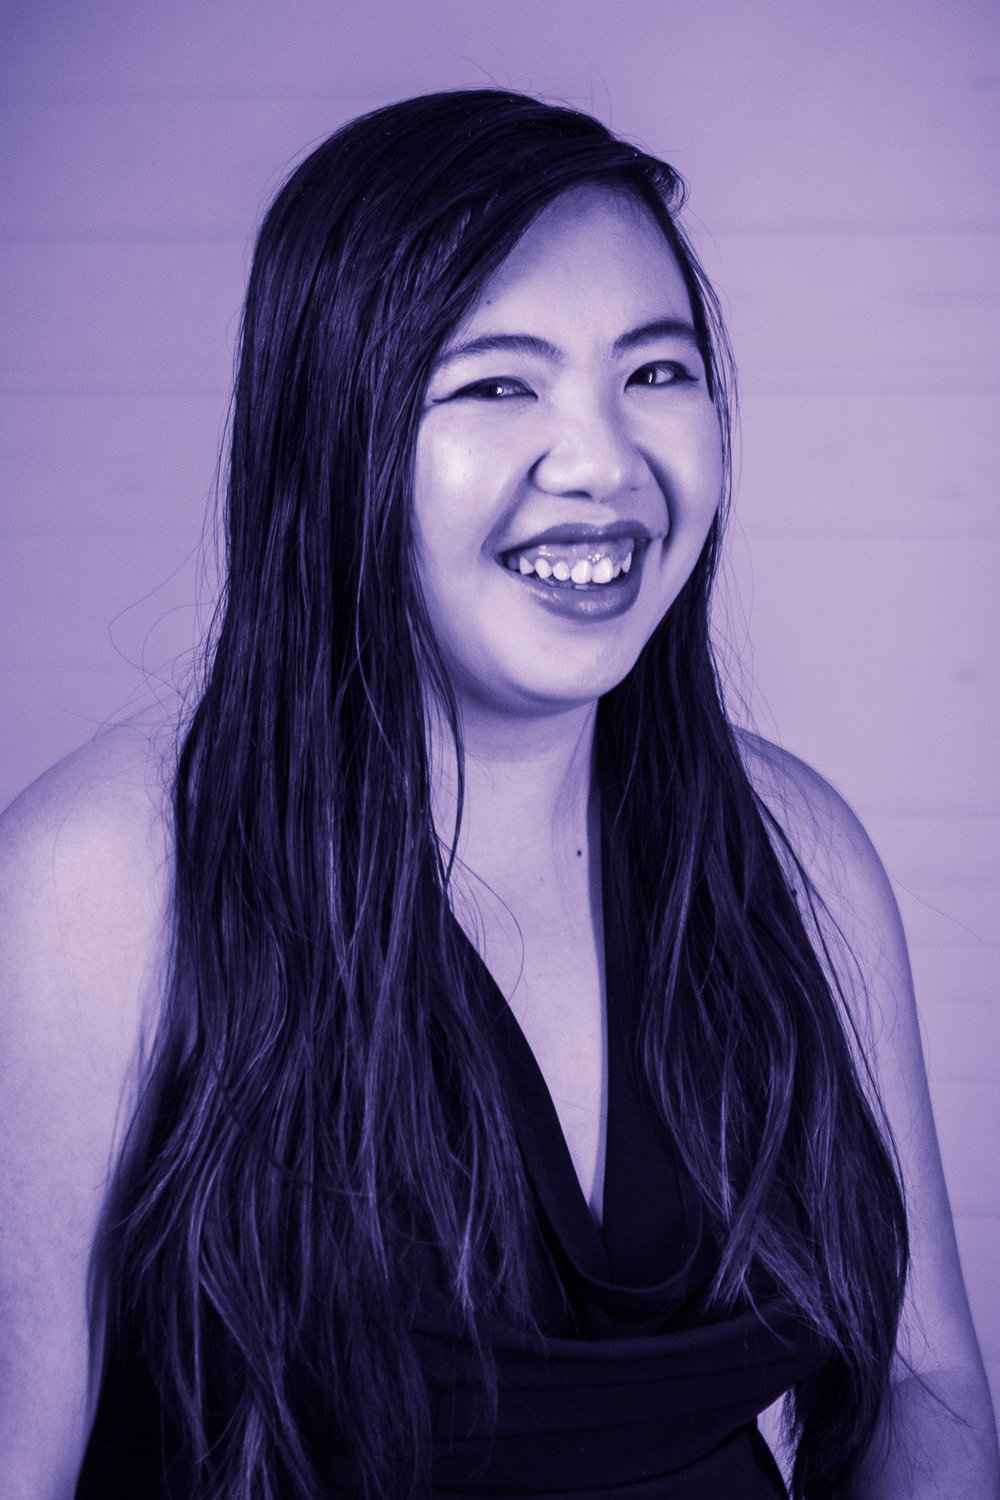 Aimy Tien Co-Director of Operations   In addition to handling the business and day-to-day operations of the collective, Aimy is a Chicago-based producer, actor and writer. Her work focuses on bringing the stories of people of color and marginalized groups to the page, stage, and screen. Learn more about Aimy and her upcoming productions and shows at  AimyTien.com